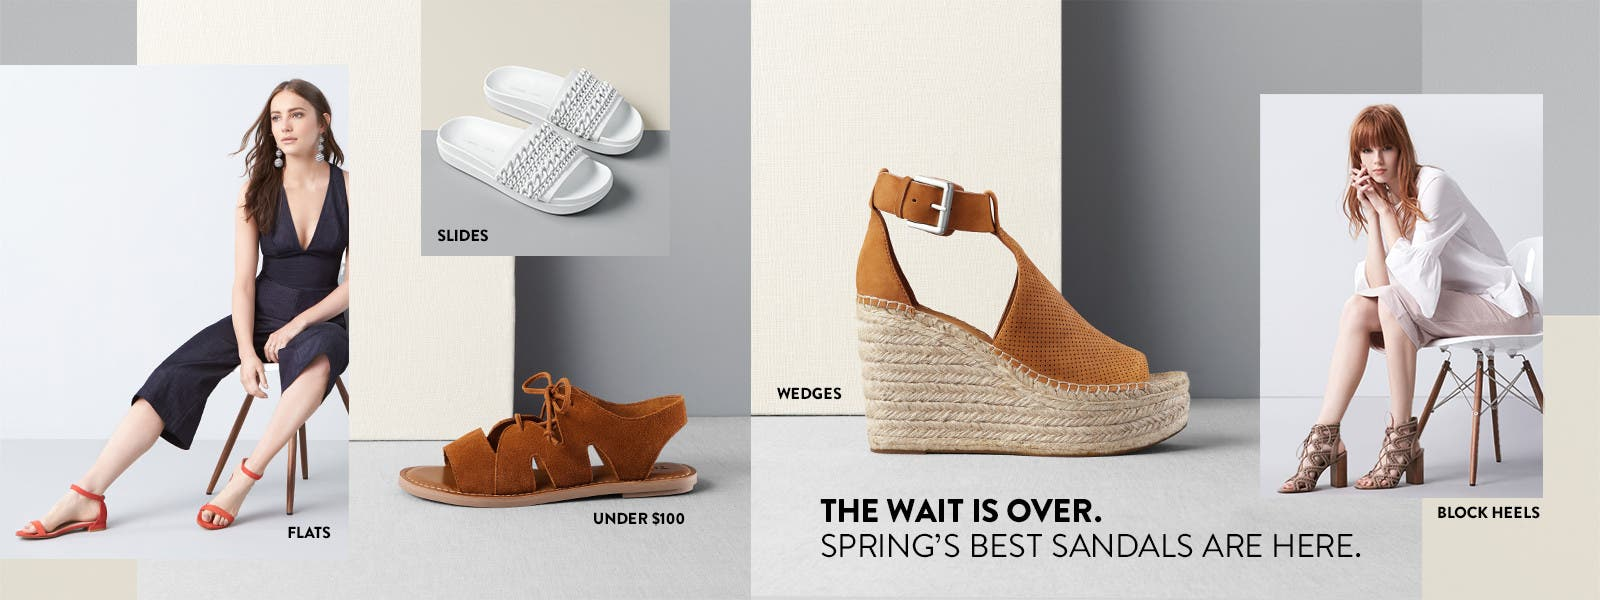 The wait is over. Spring sandals are here.